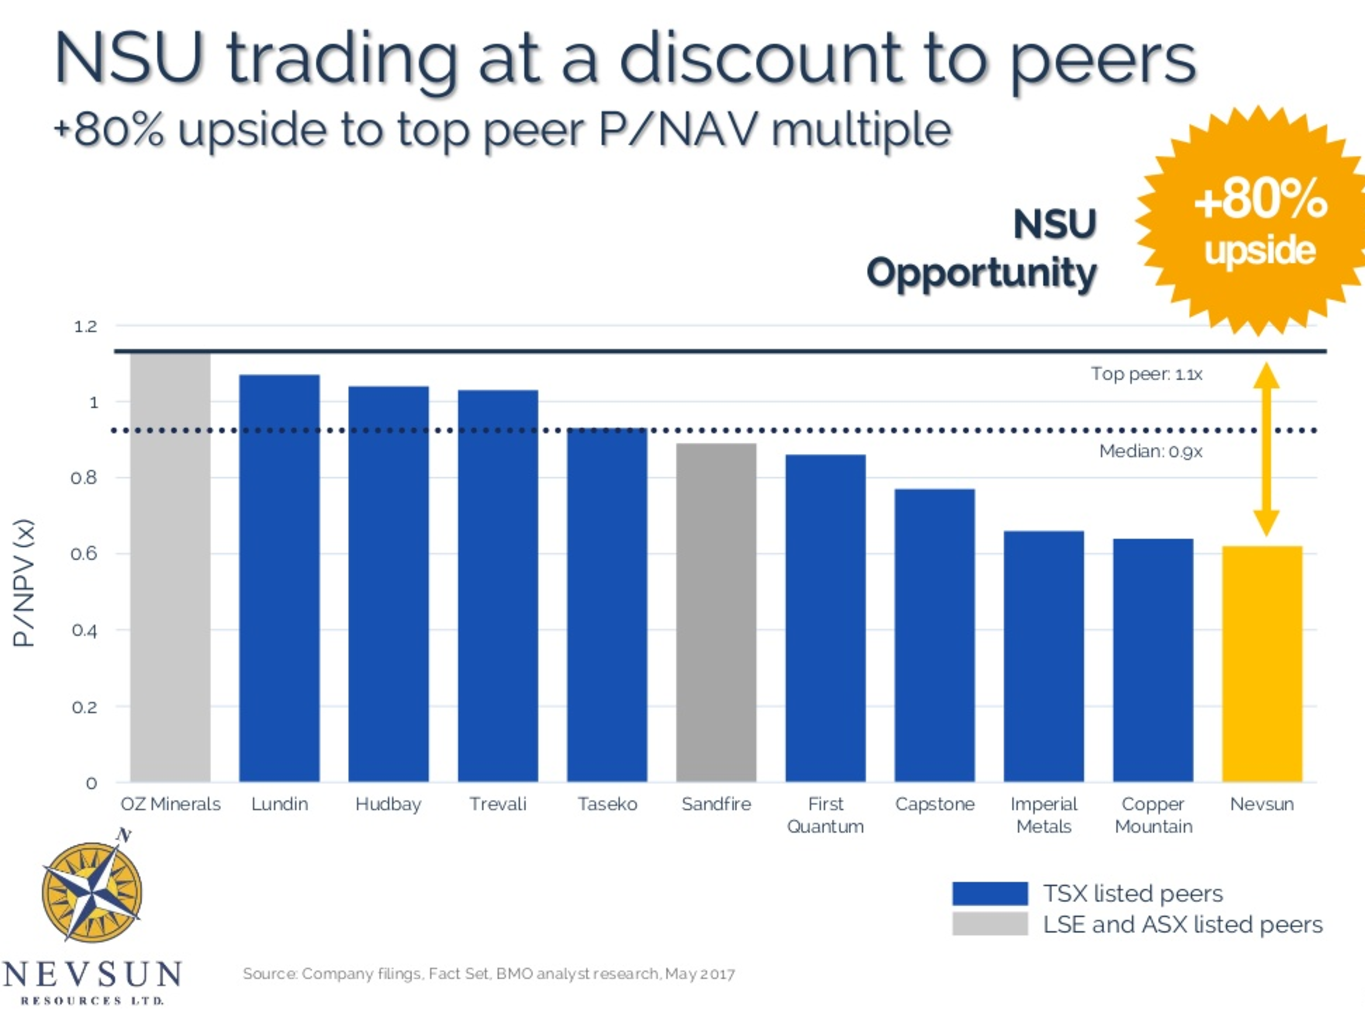 NSU trading at a discount comparing peers